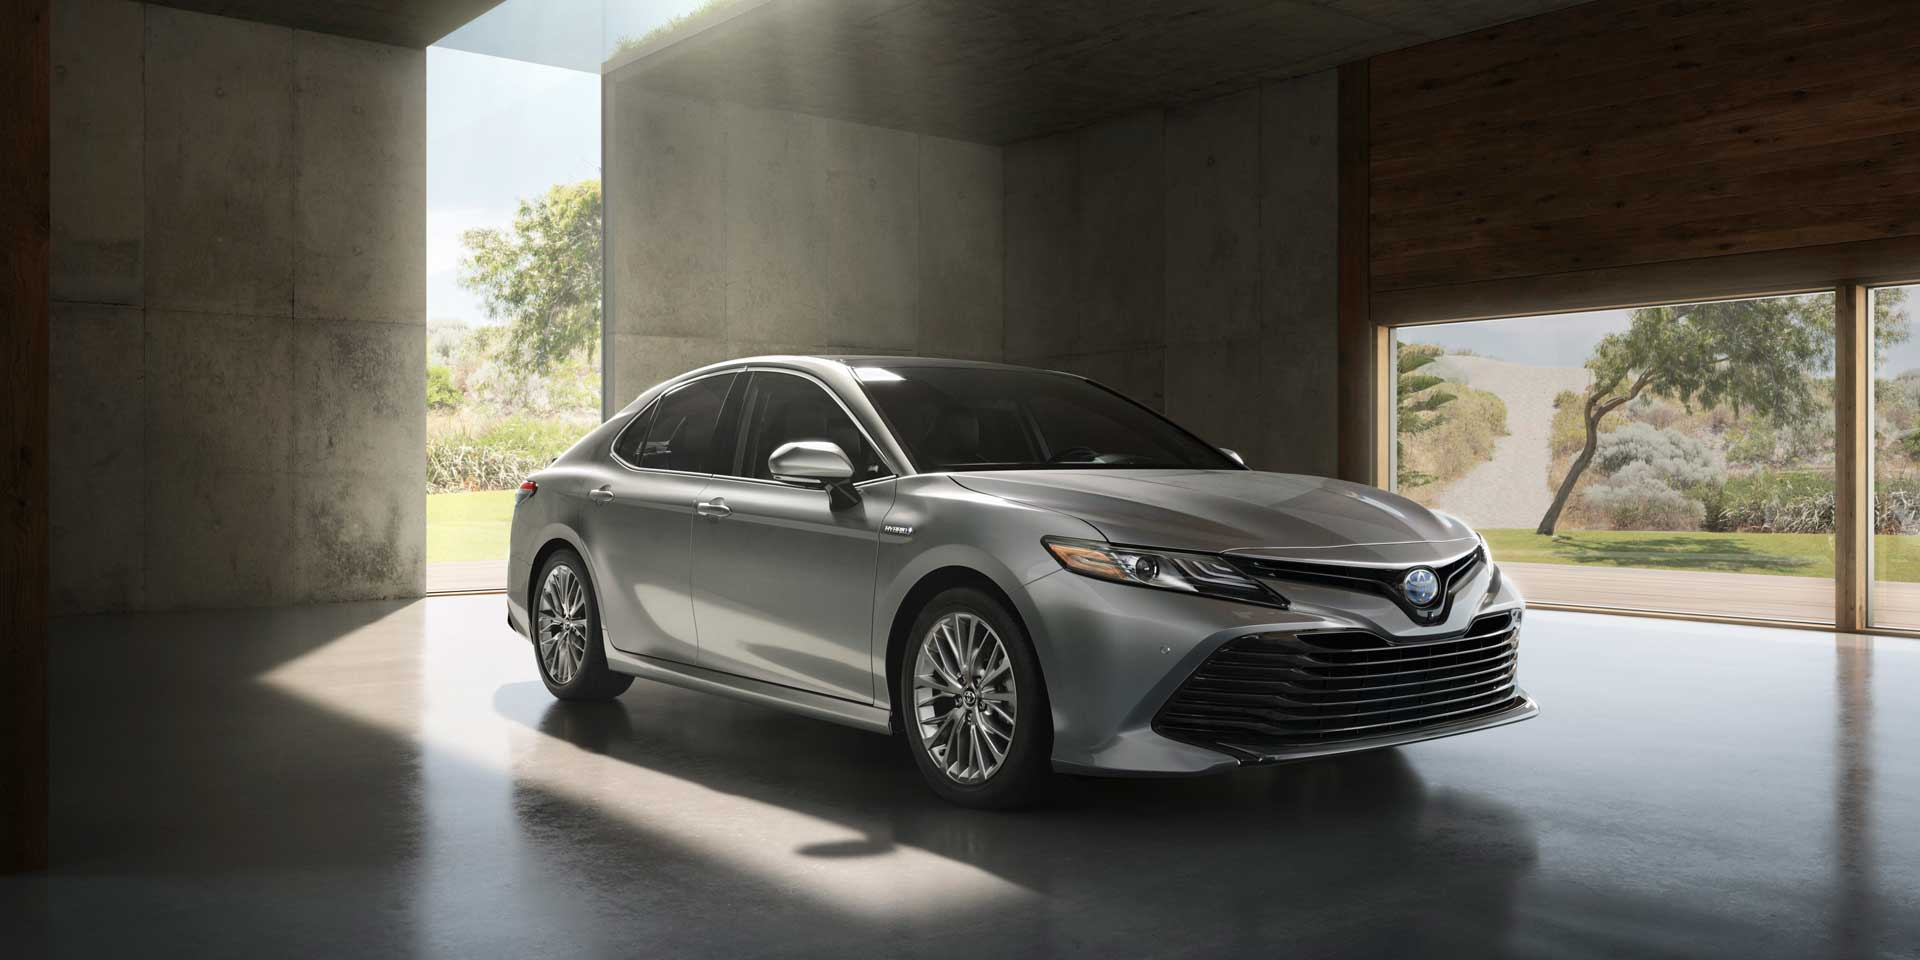 2019 - Toyota - Camry - Vehicles on Display | Chicago Auto Show